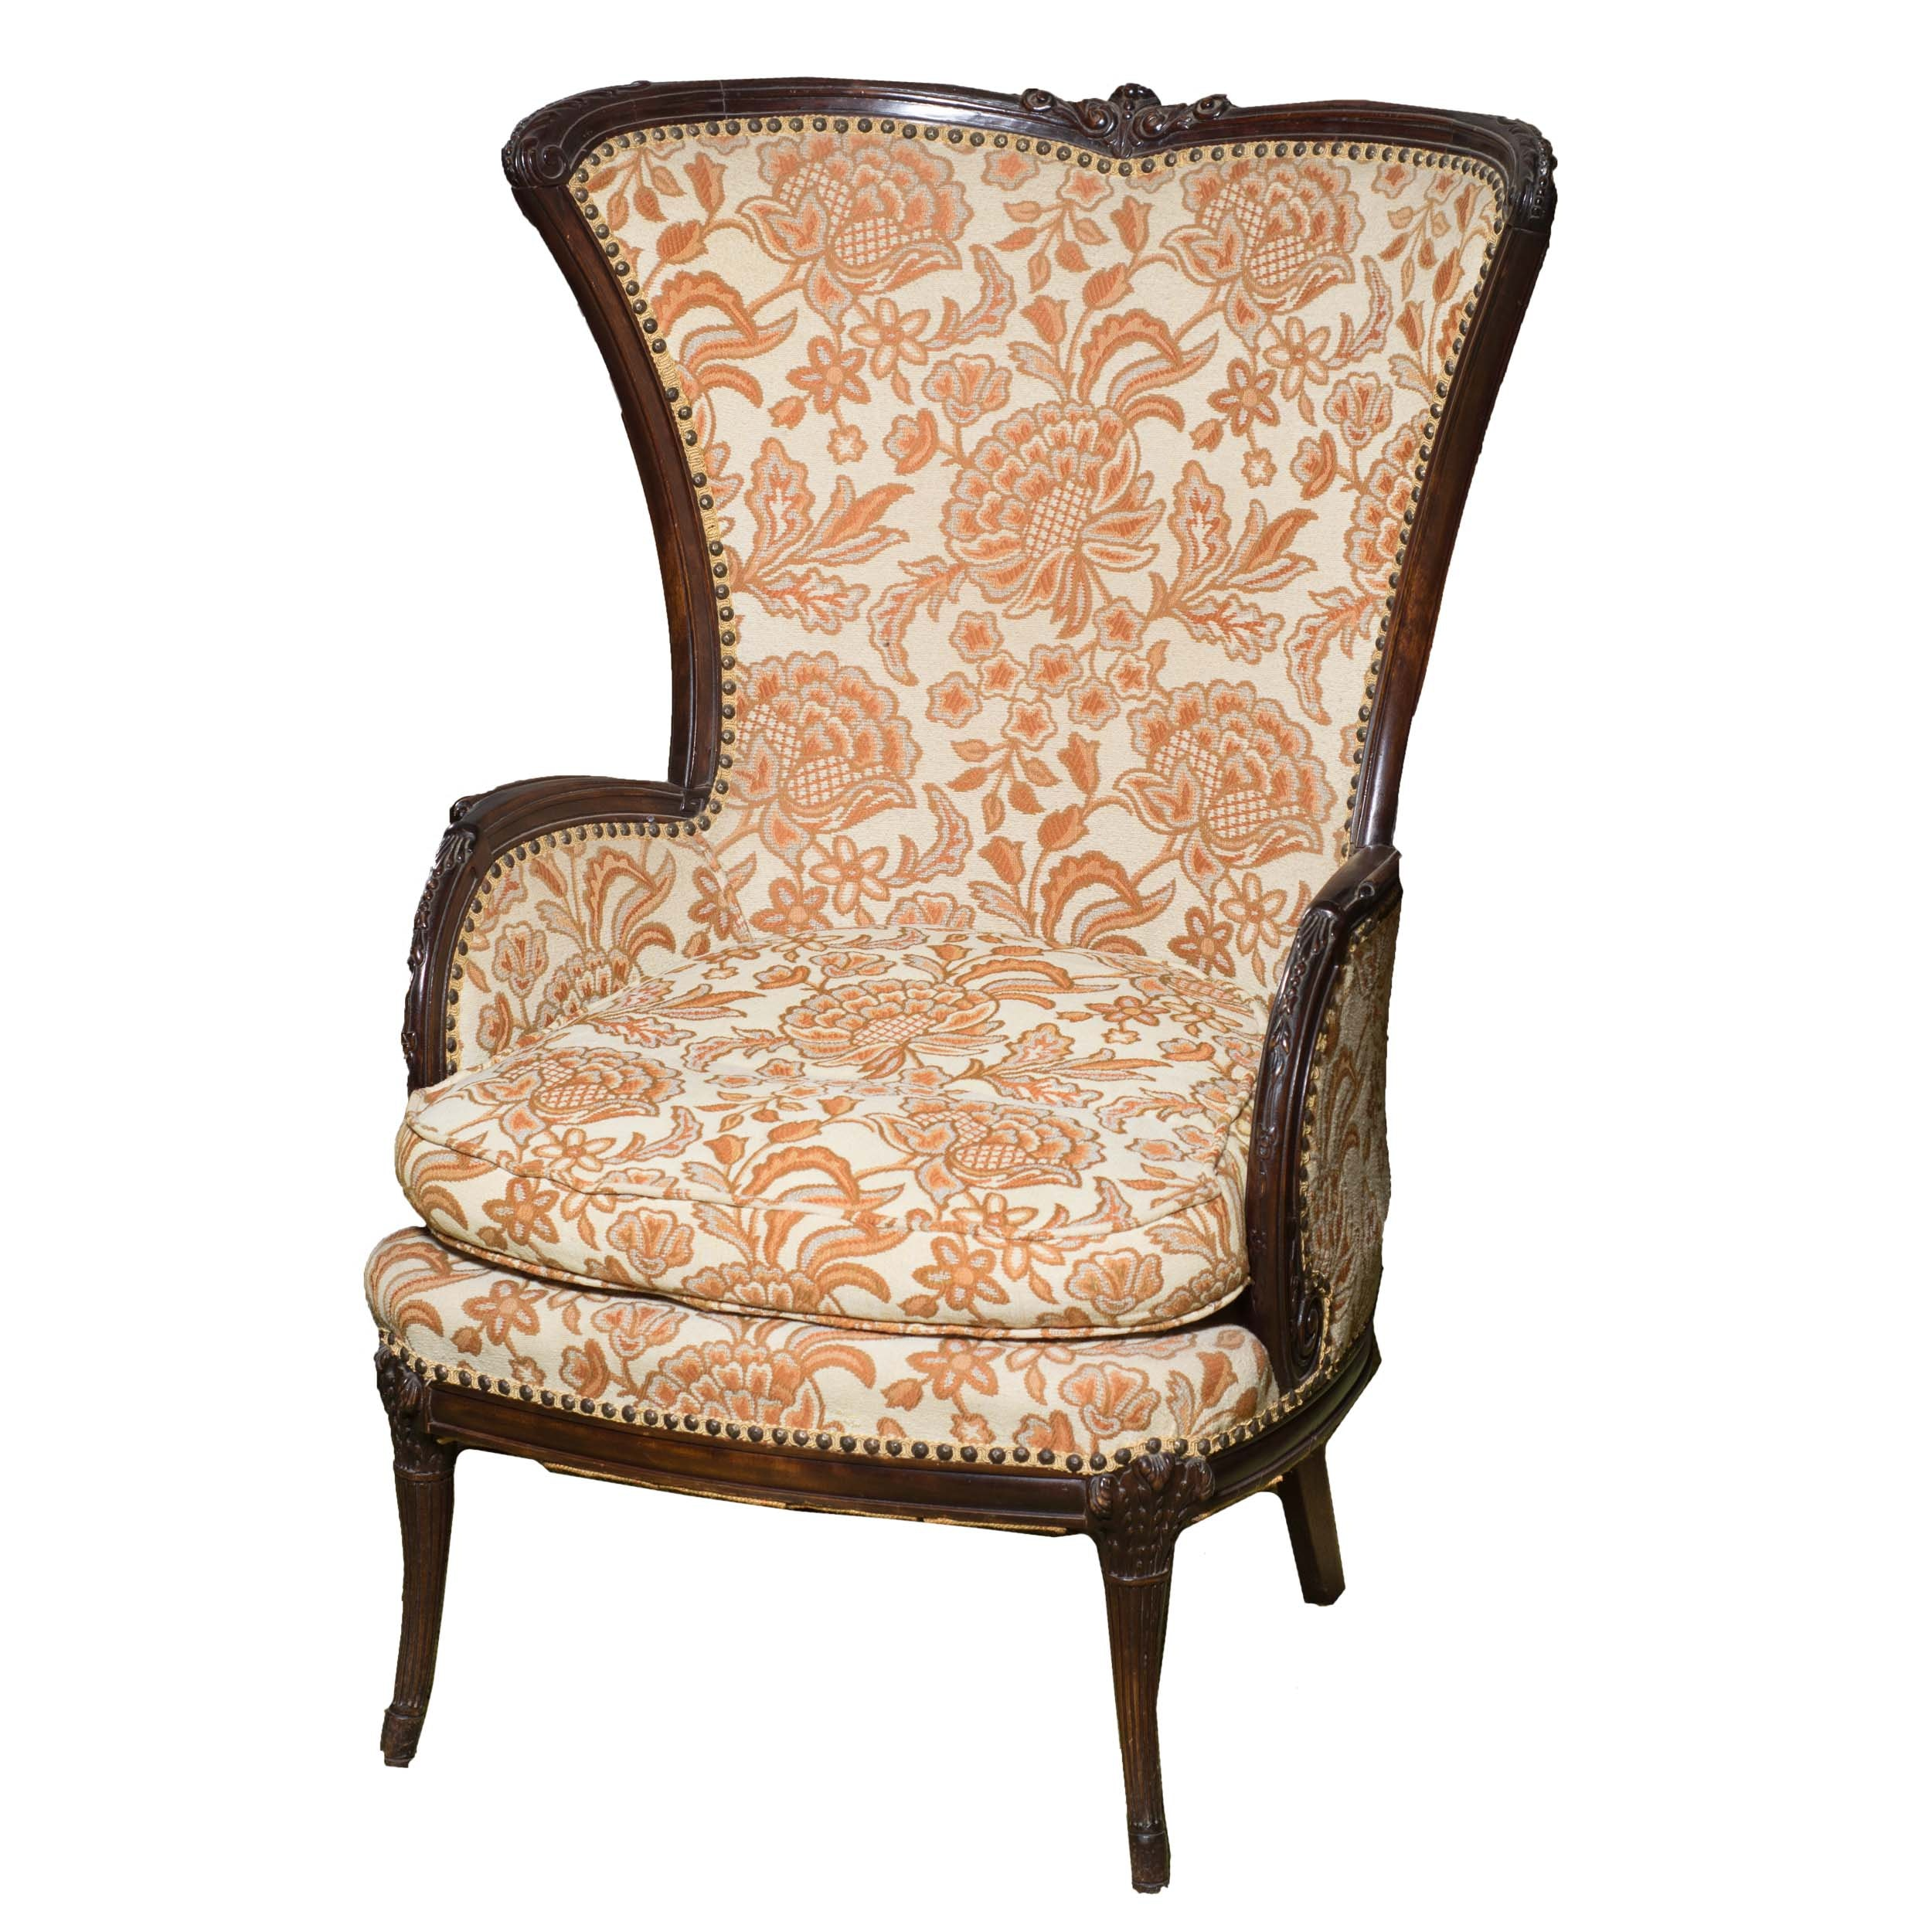 Vintage Wing Back Chair With Prince of Wales Feathers Detail